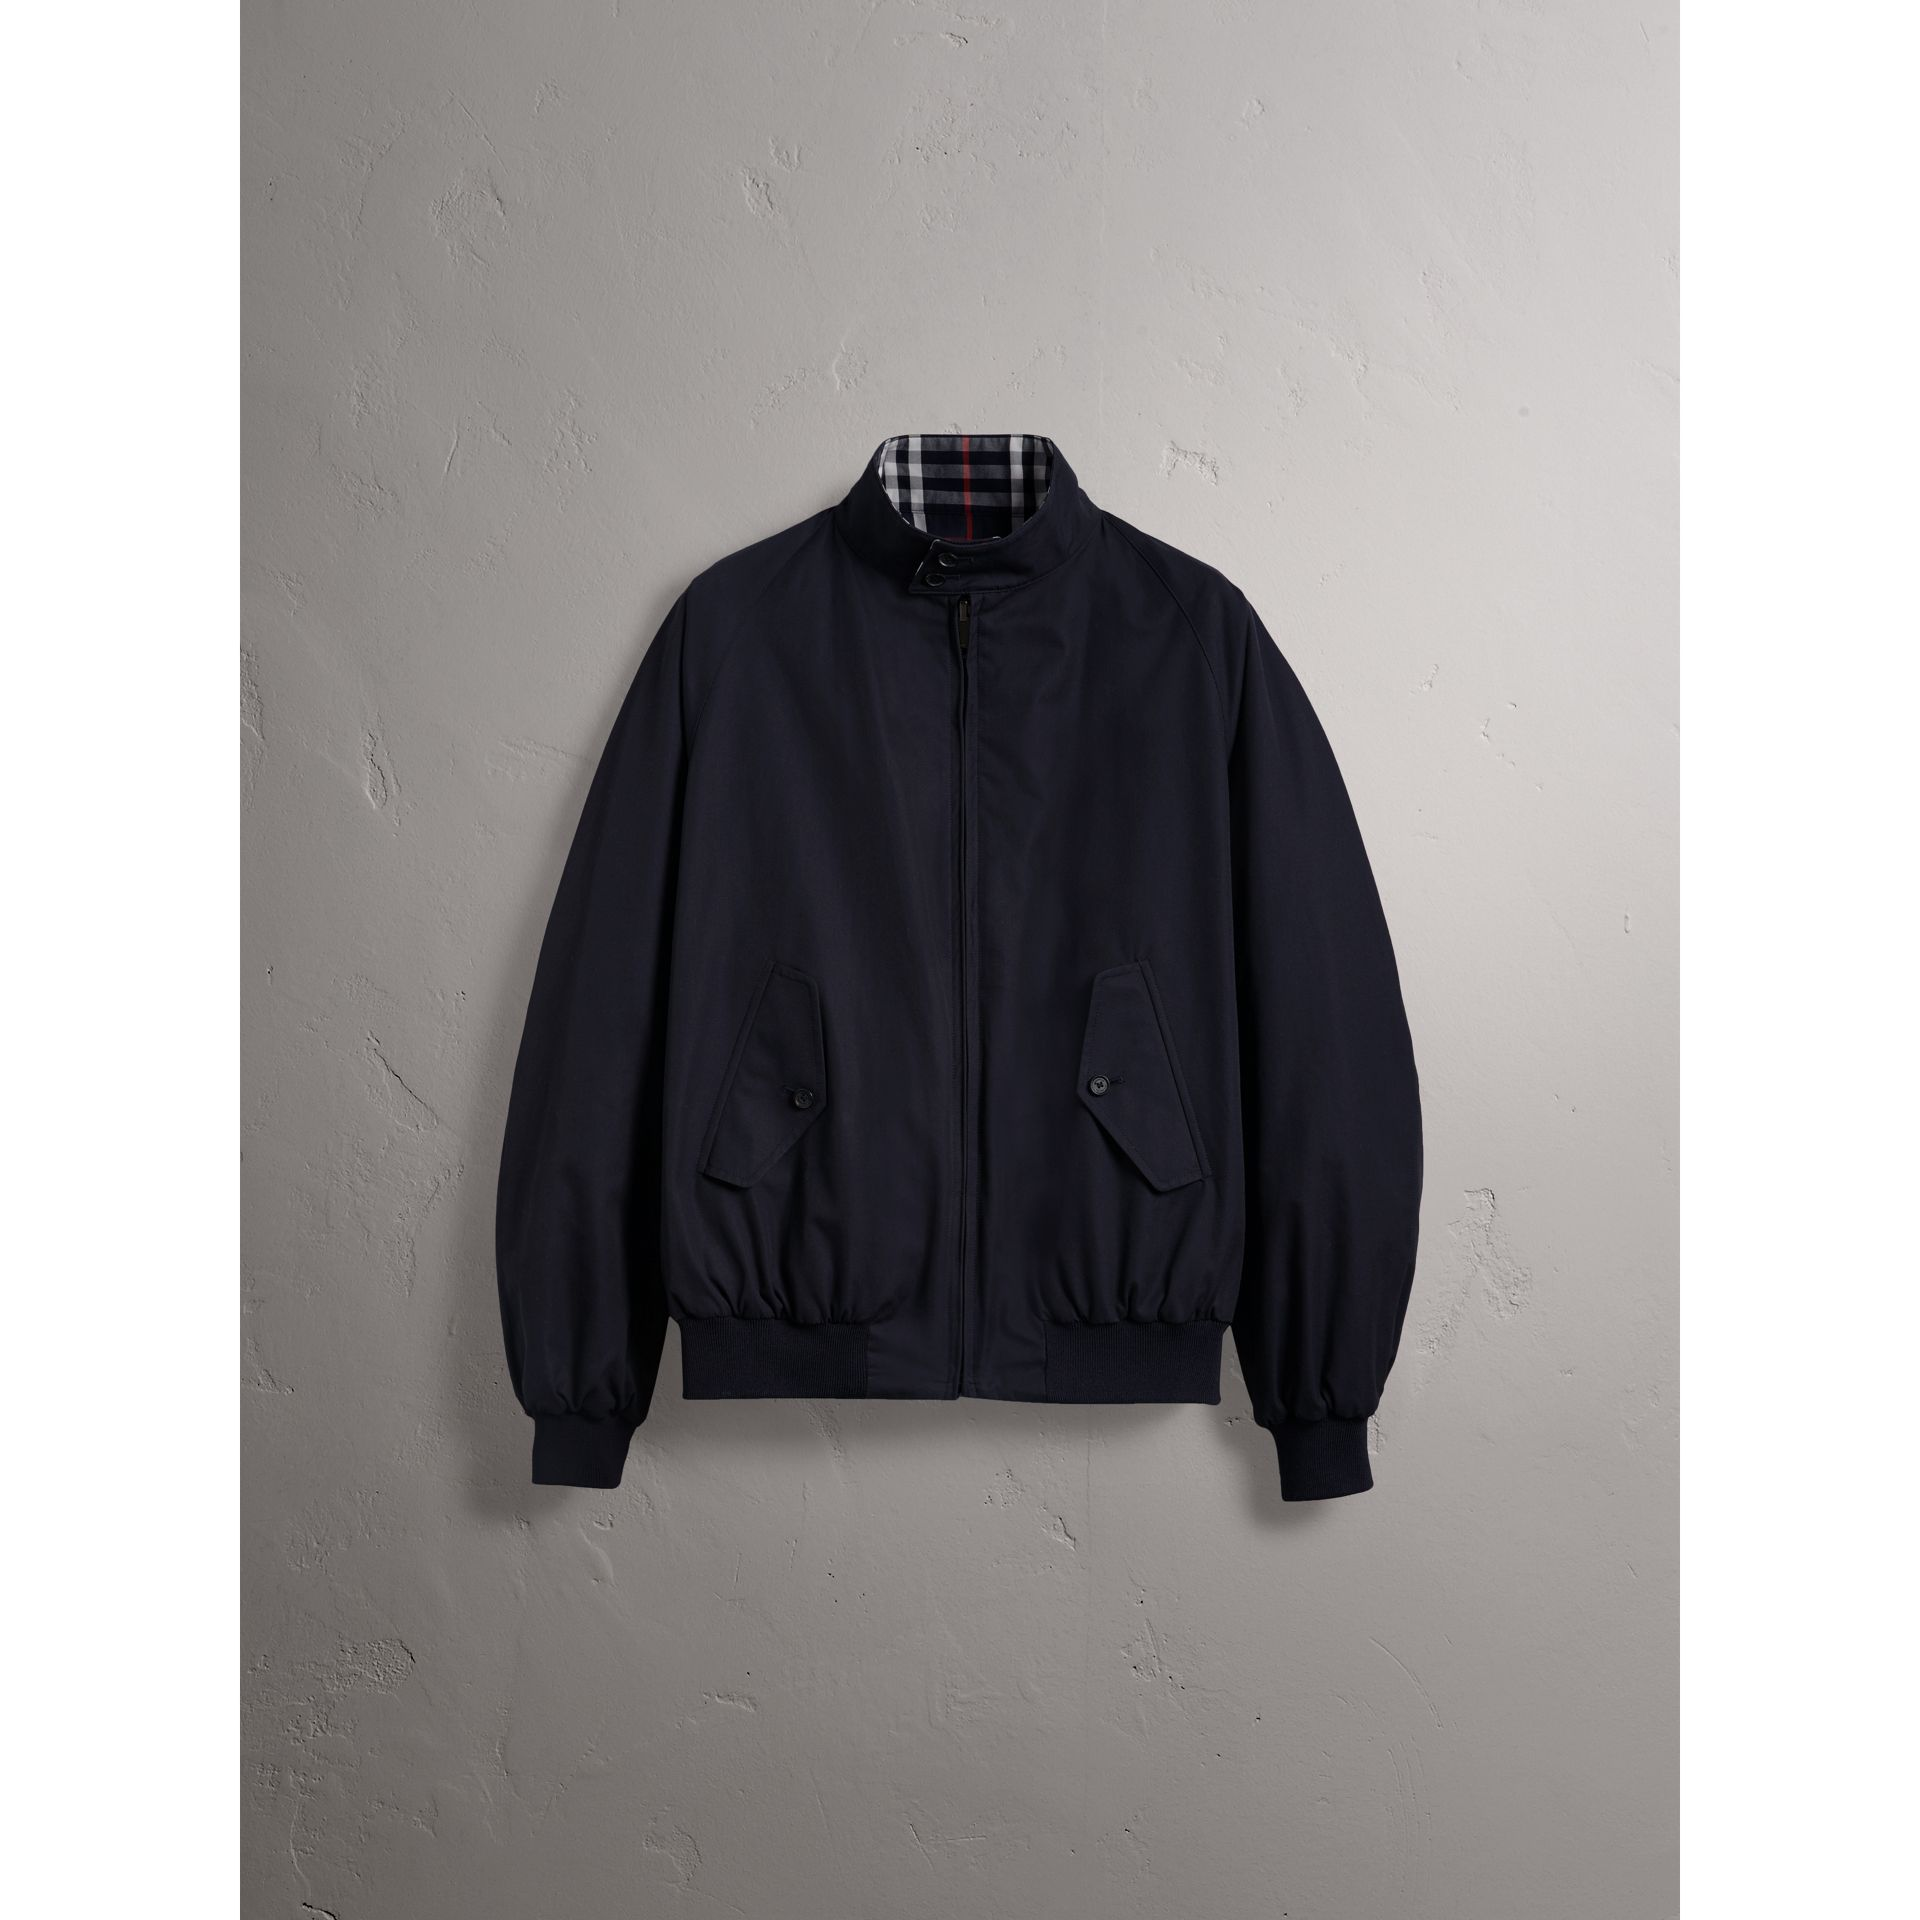 Gosha x Burberry Reversible Harrington Jacket in Navy | Burberry United Kingdom - gallery image 4